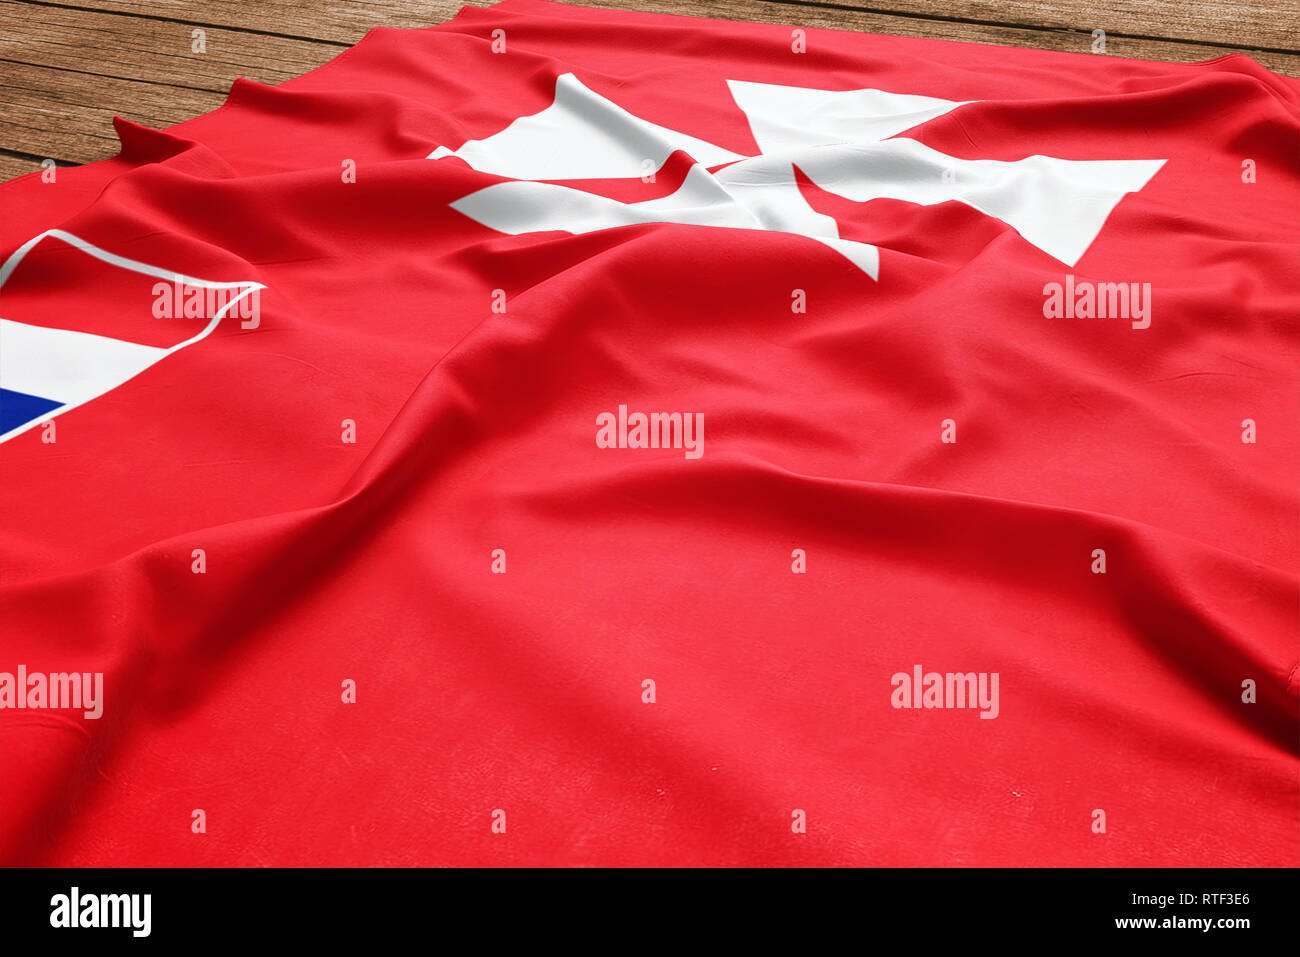 Flag of Wallis And Futuna on a wooden desk background. Silk flag top view. - Stock Image